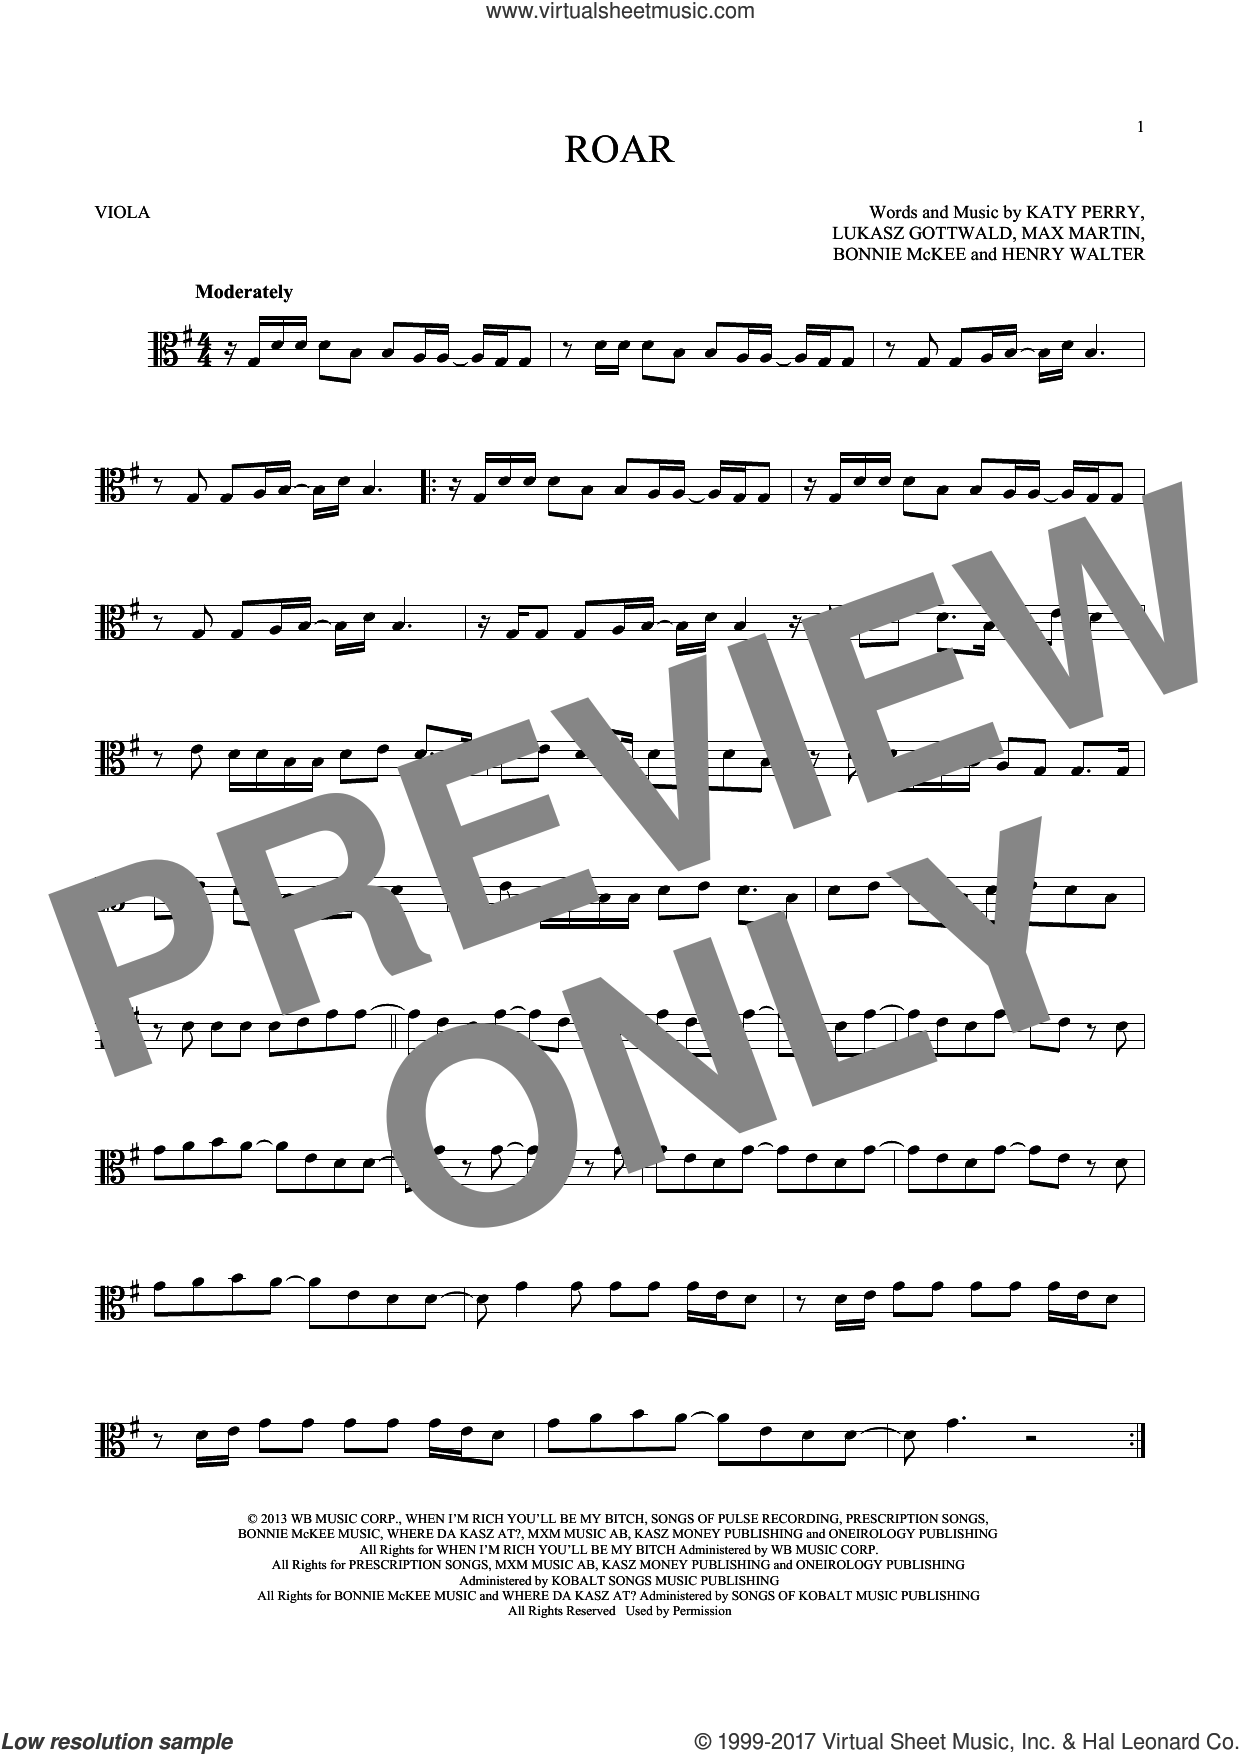 Roar sheet music for viola solo by Max Martin, Bonnie McKee, Henry Walter, Katy Perry and Lukasz Gottwald. Score Image Preview.